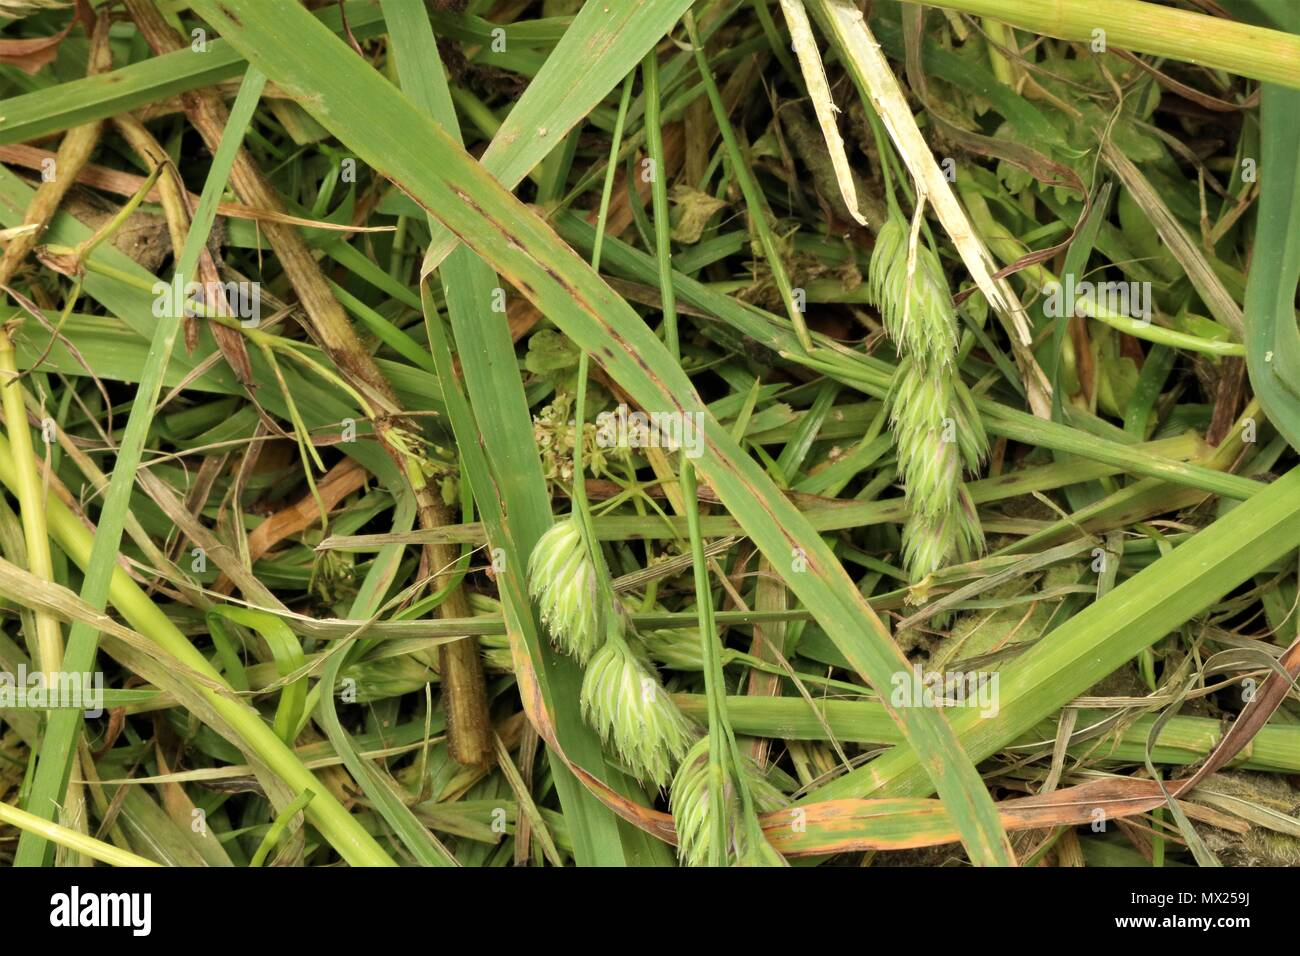 Grass and weeds background - Stock Image